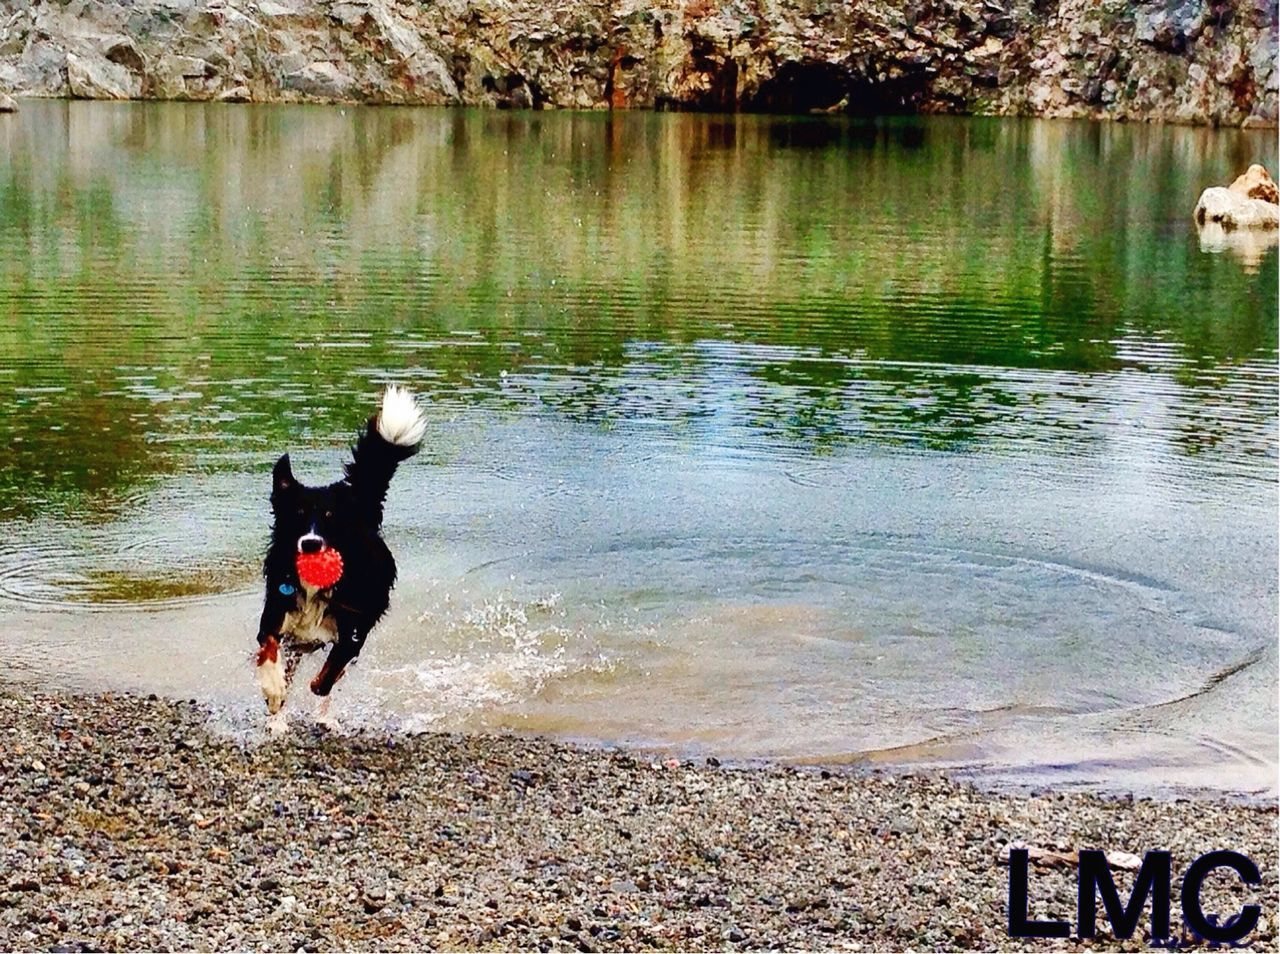 dog, pets, domestic animals, animal themes, one animal, water, mammal, black color, nature, outdoors, day, no people